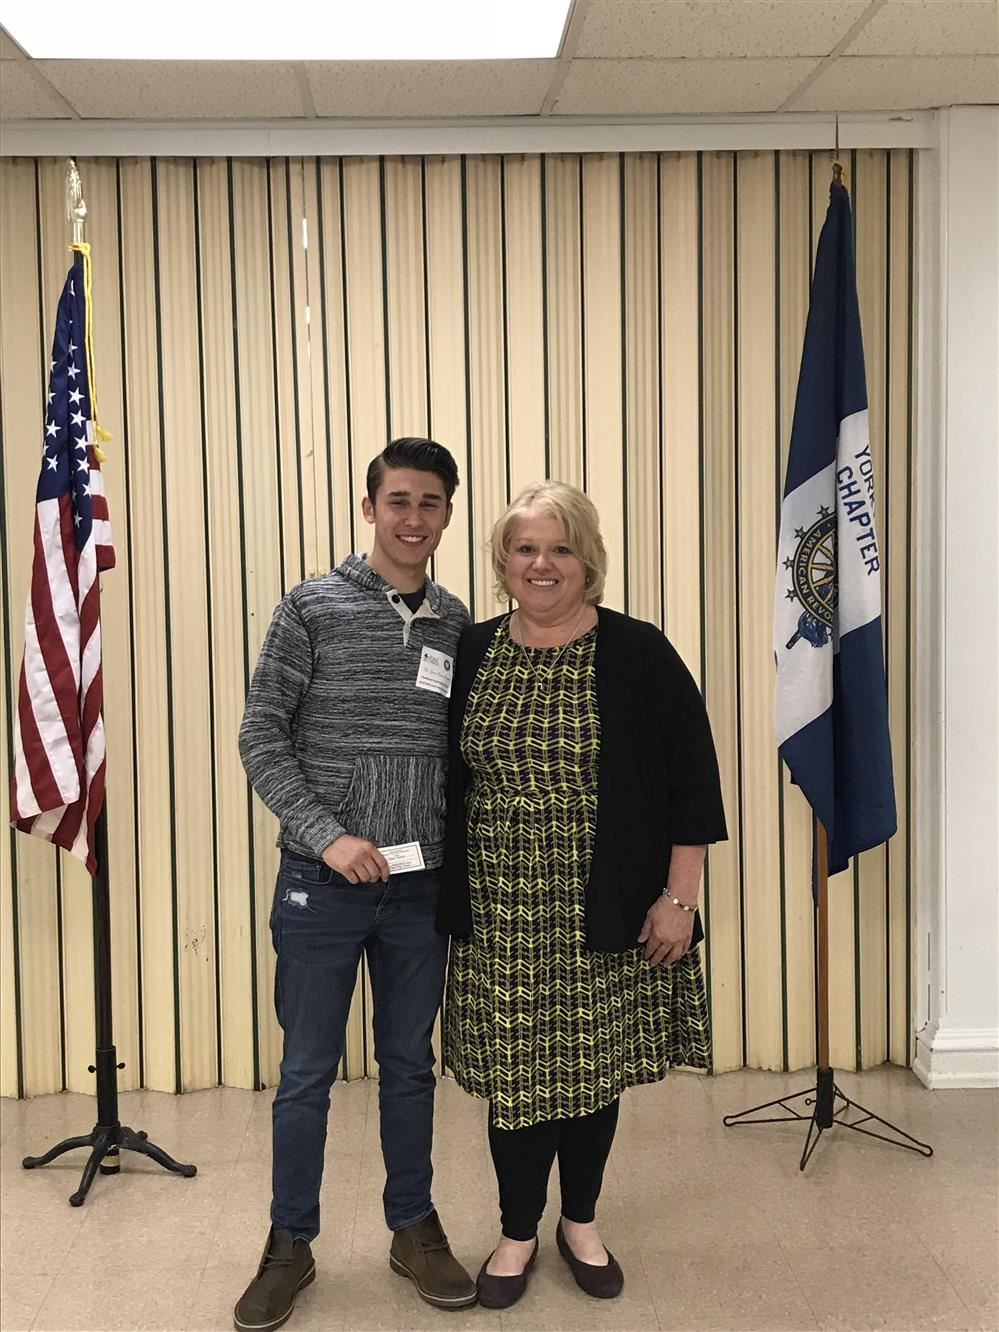 Northern Senior Grant Franko Receives Good Citizen Award